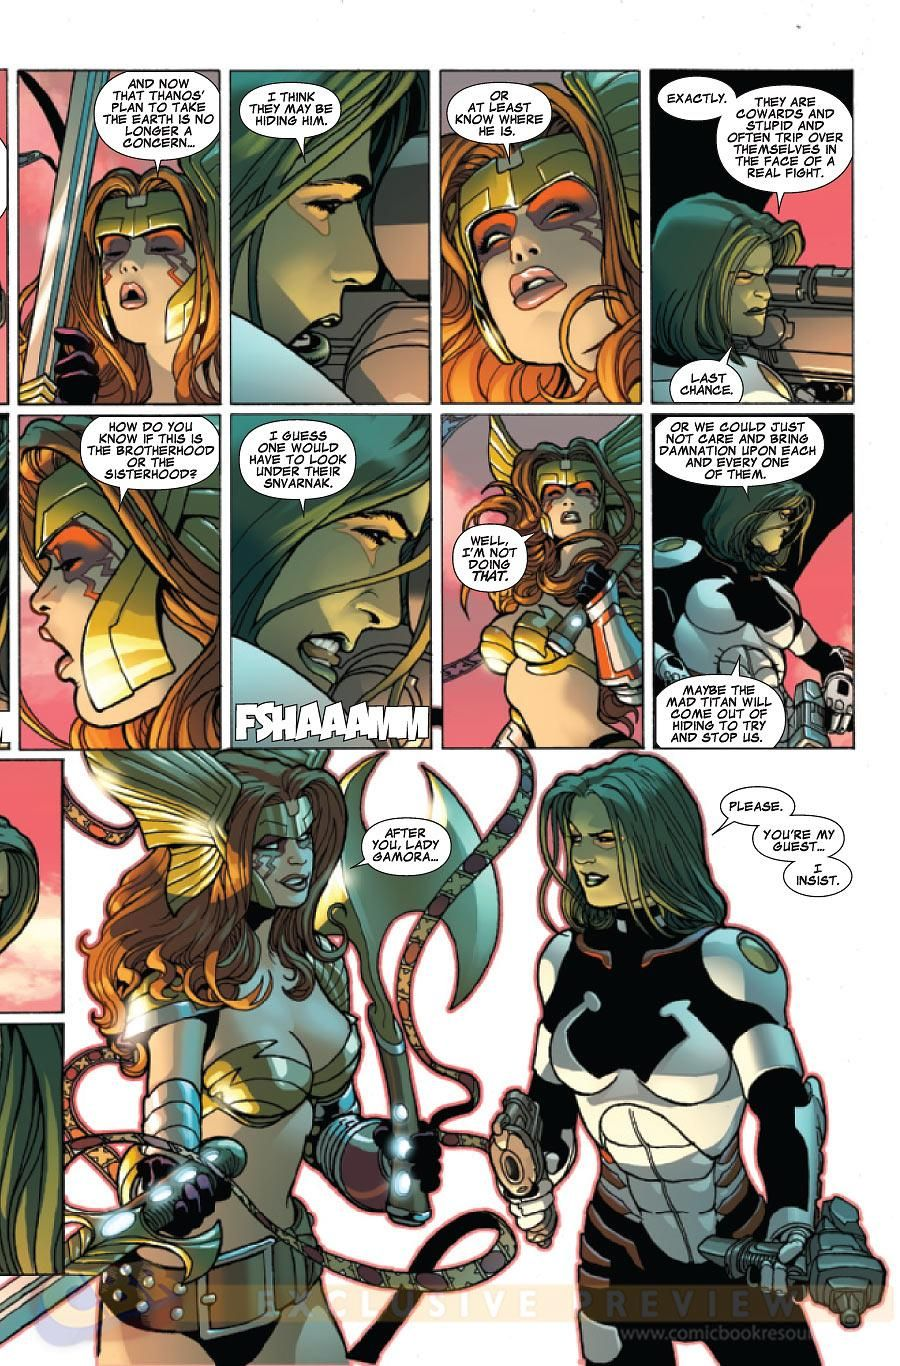 COMICS: 'Angela' And 'Gamora' Head Into Battle In GUARDIANS OF THE GALAXY #10 Preview